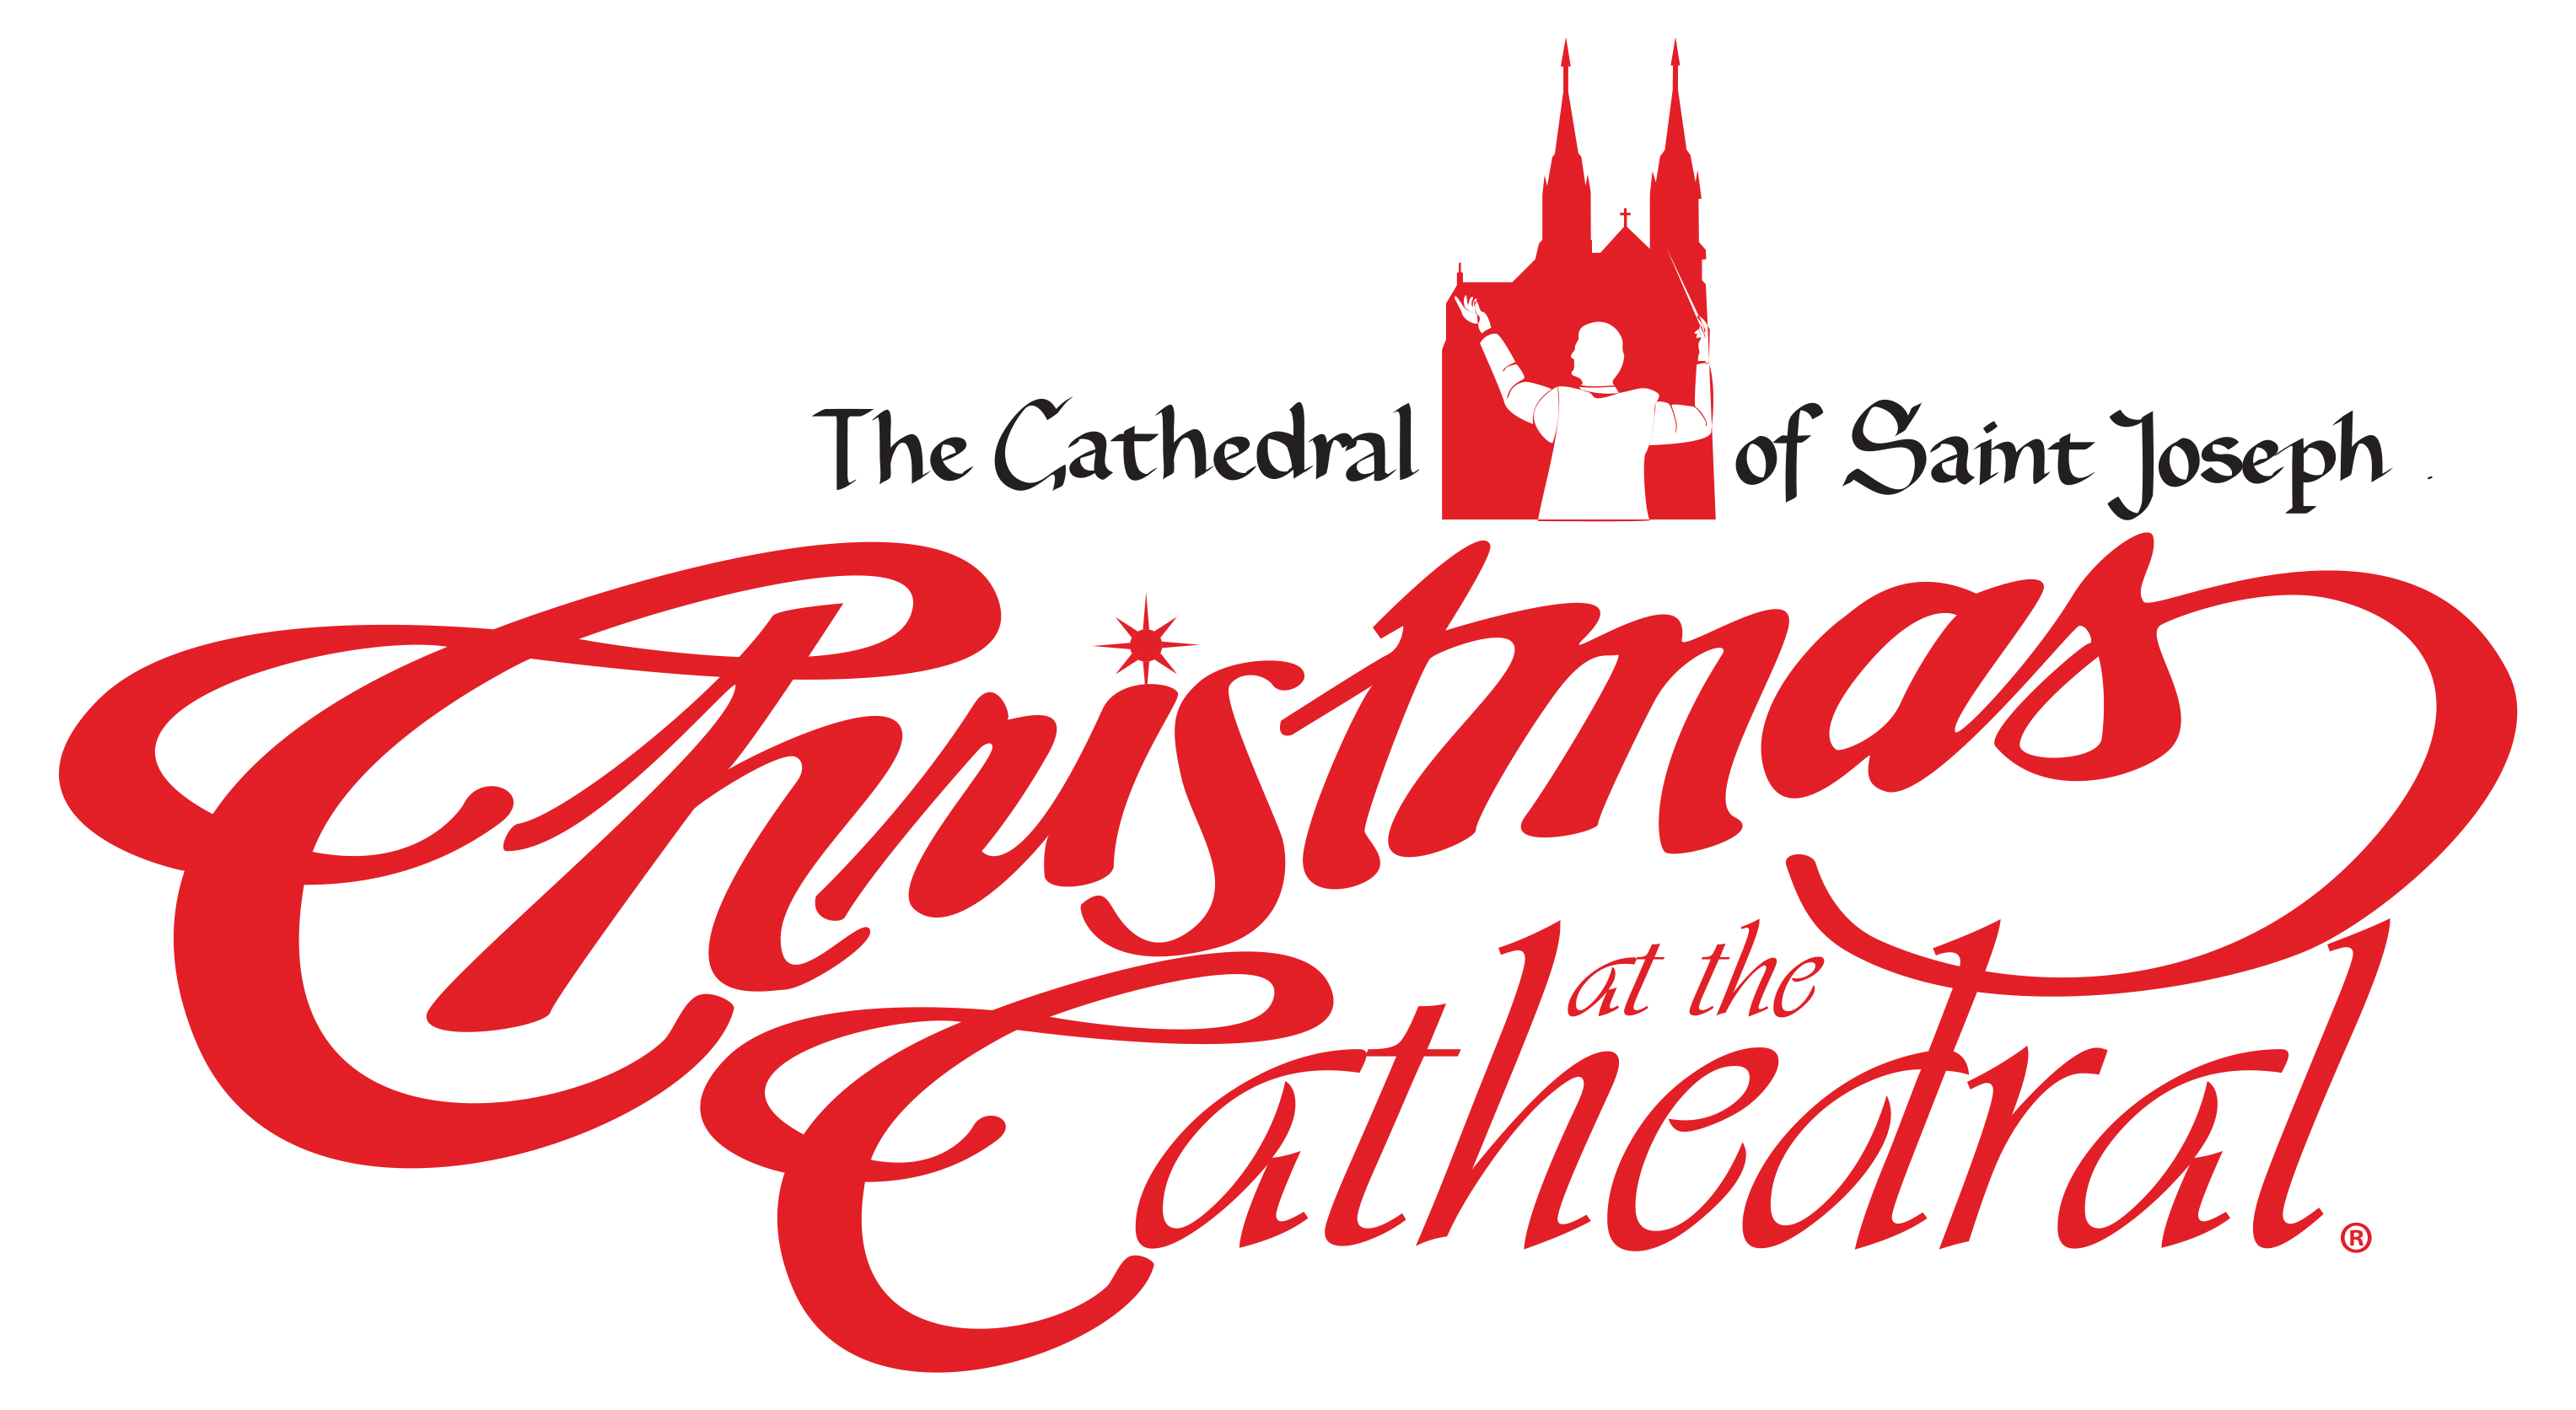 Christmas At The Cathedral 2020 Sioux Falls Sd Christmas at the Cathedral | The Catholic Community Foundation